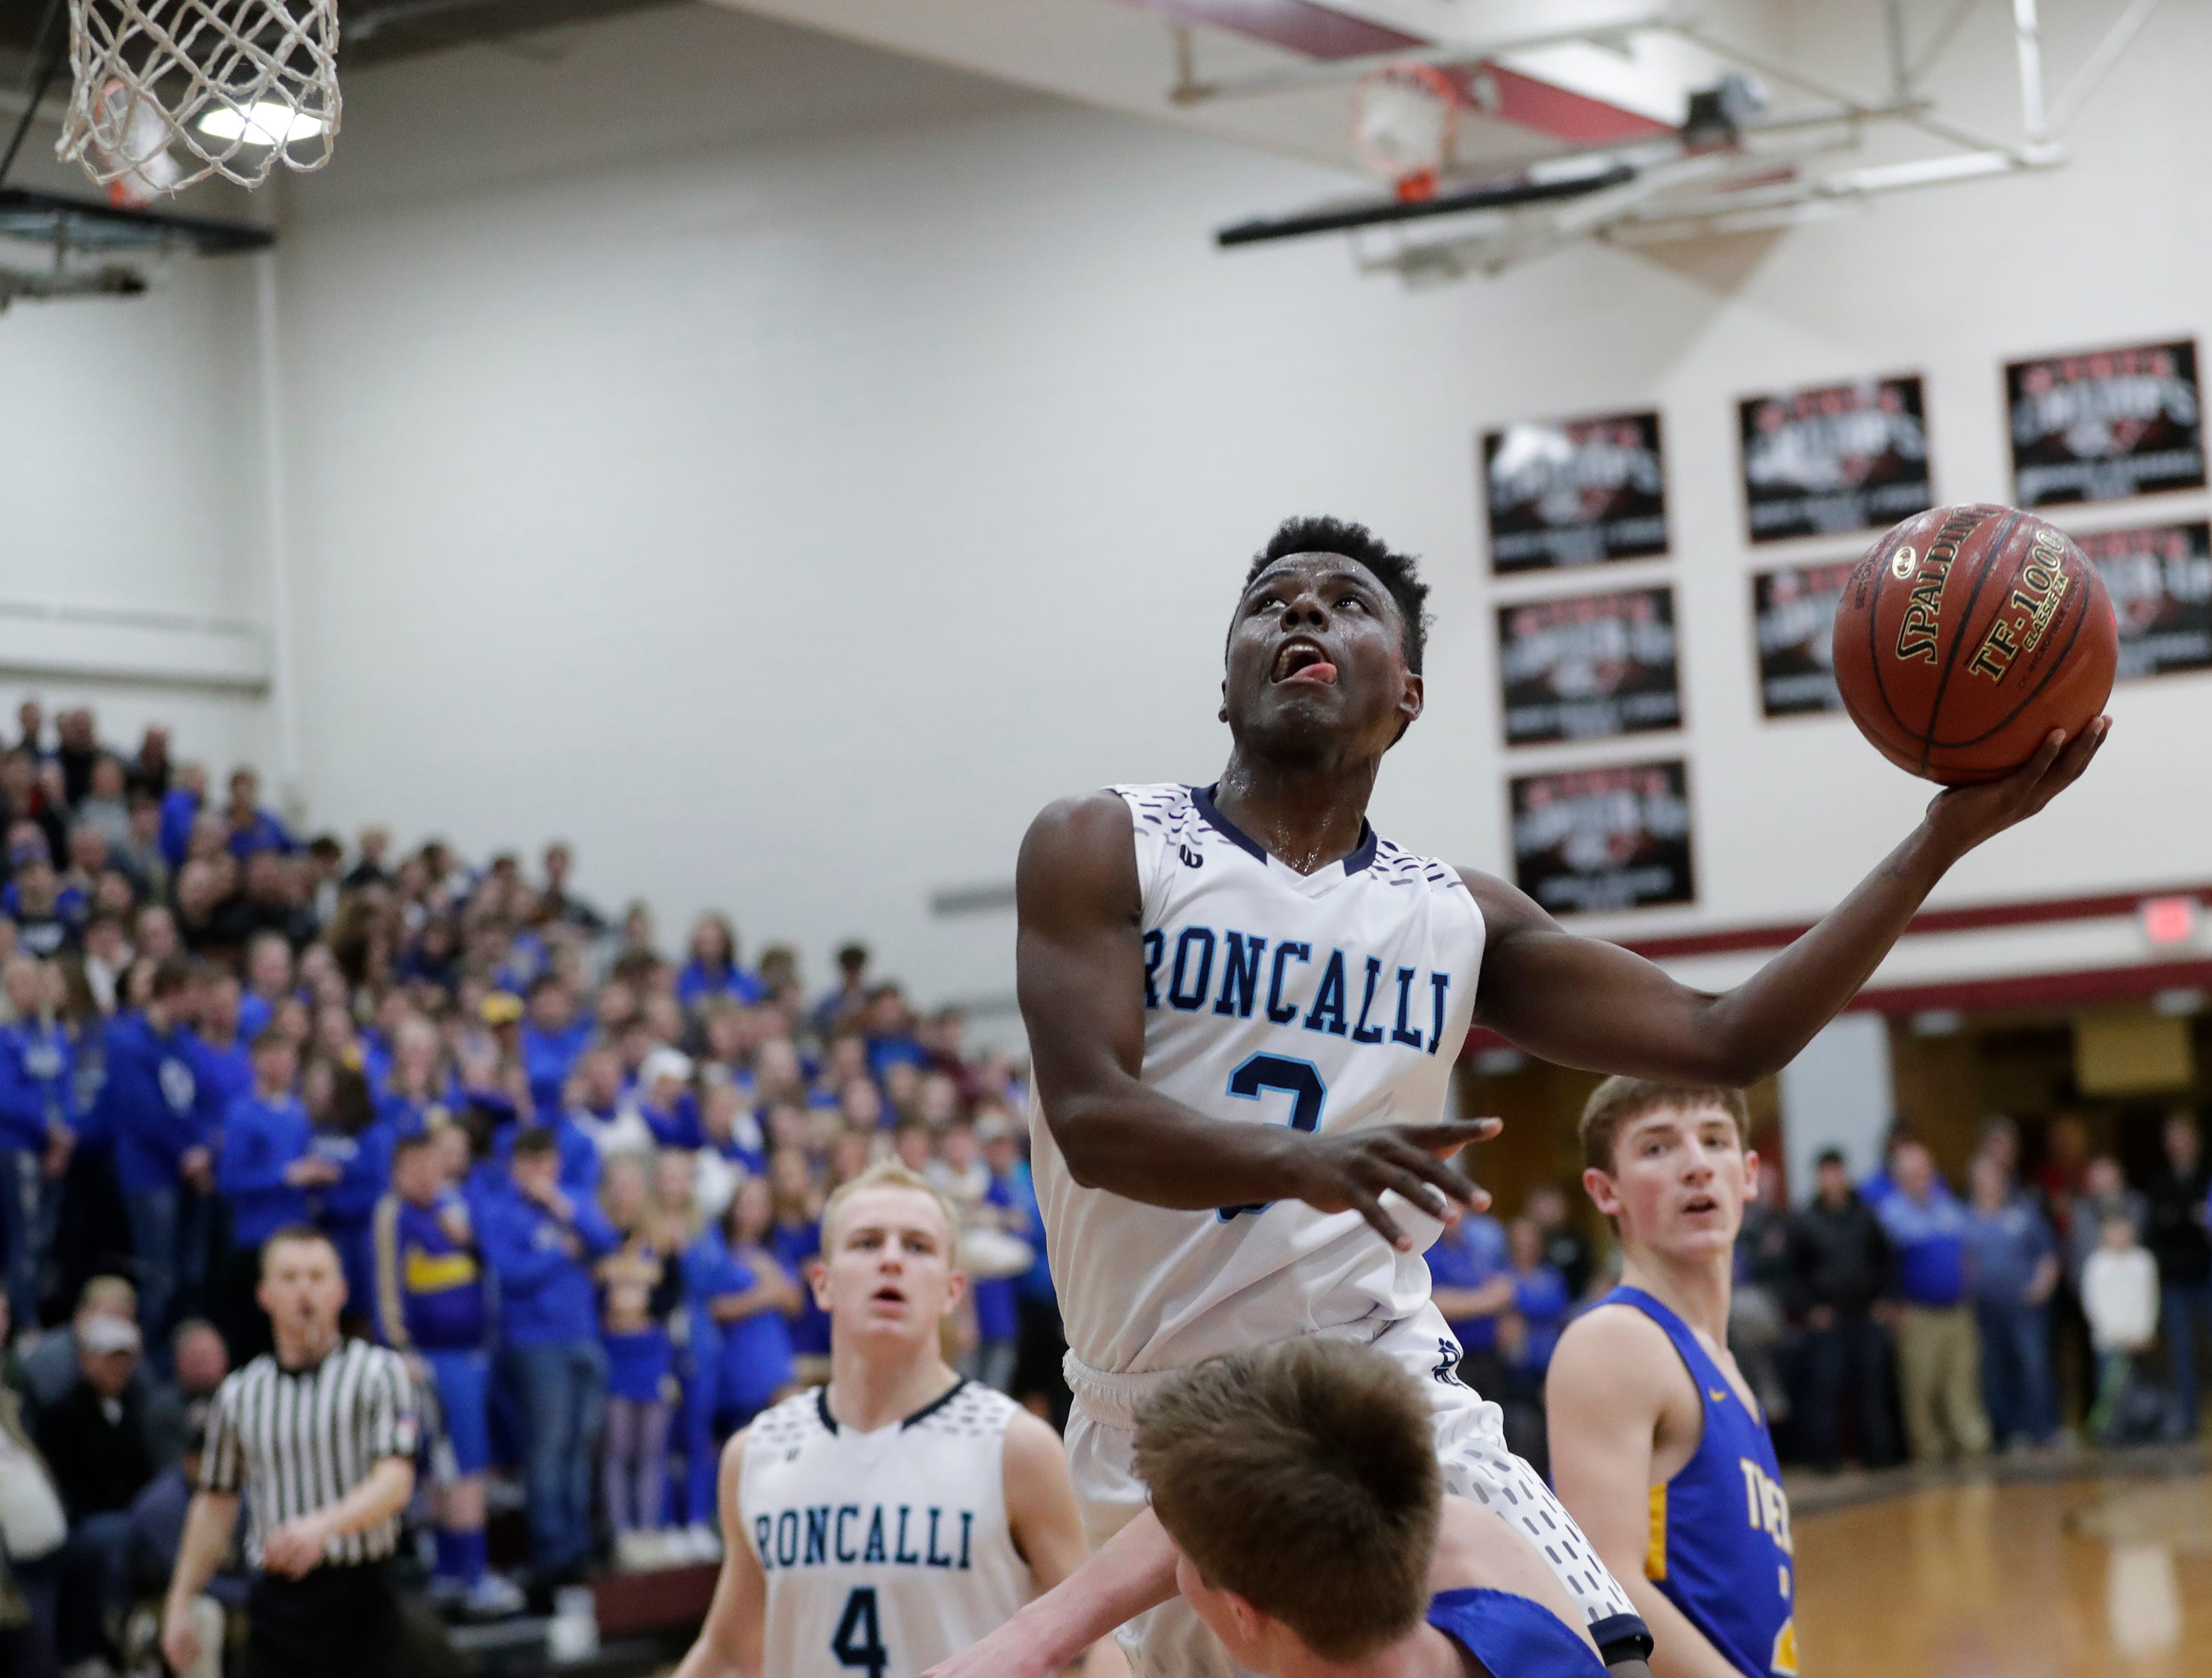 Roncalli's Chombi Lambert (3) takes it to the basket against Howards Grove in a WIAA Division 4 sectional semifinal at New Holstein High School Thursday, March 7, 2019, in New Holstein, Wis. Joshua Clark/USA TODAY NETWORK-Wisconsin